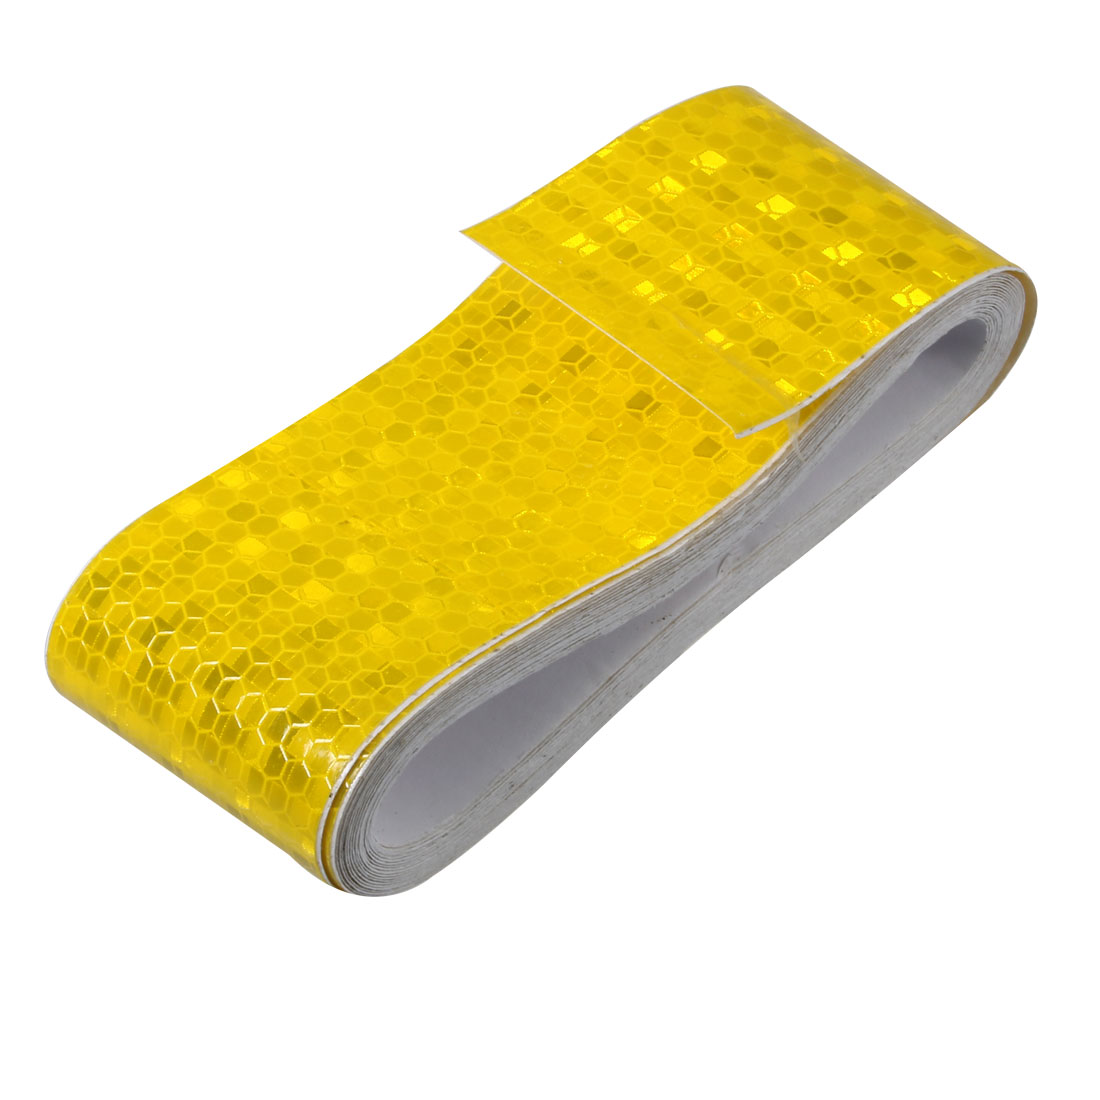 Honeycomb Reflective Warning Tape Film Sticker Yellow 50mm Width 5m Length